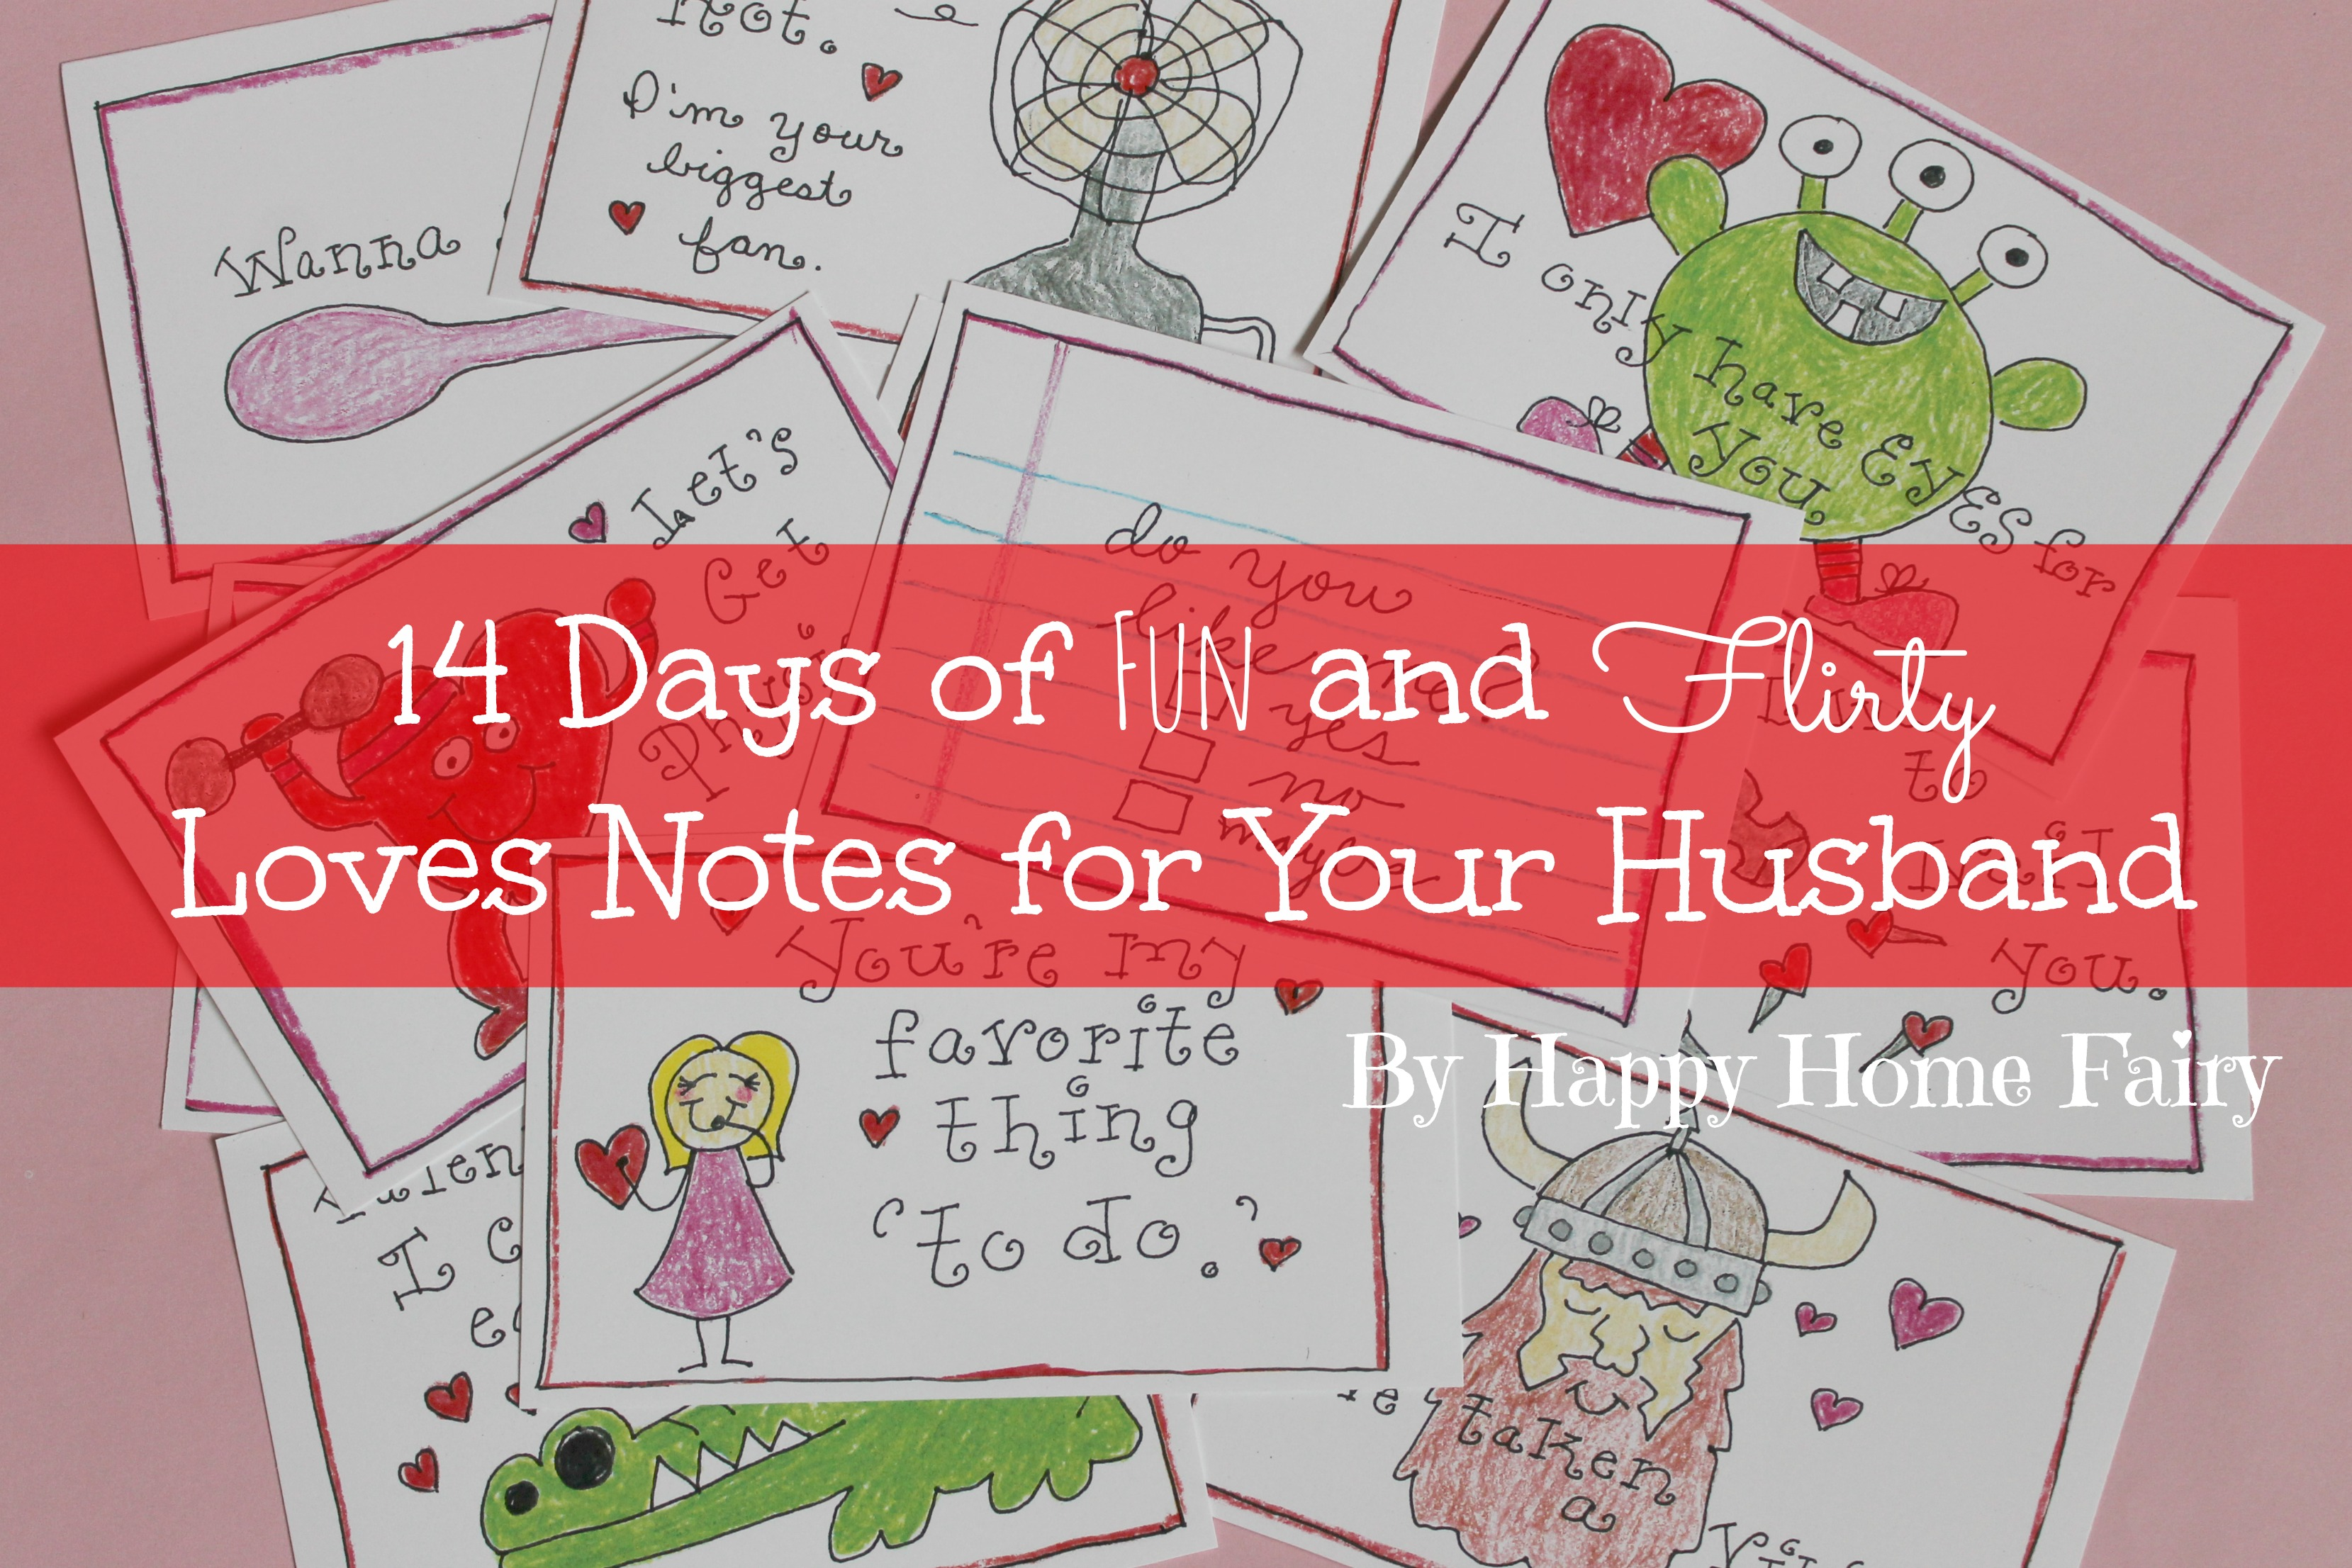 14 days of fun and flirty love notes for your husband free 14 days of fun and flirty love notes for your husband for valentines day these thecheapjerseys Image collections